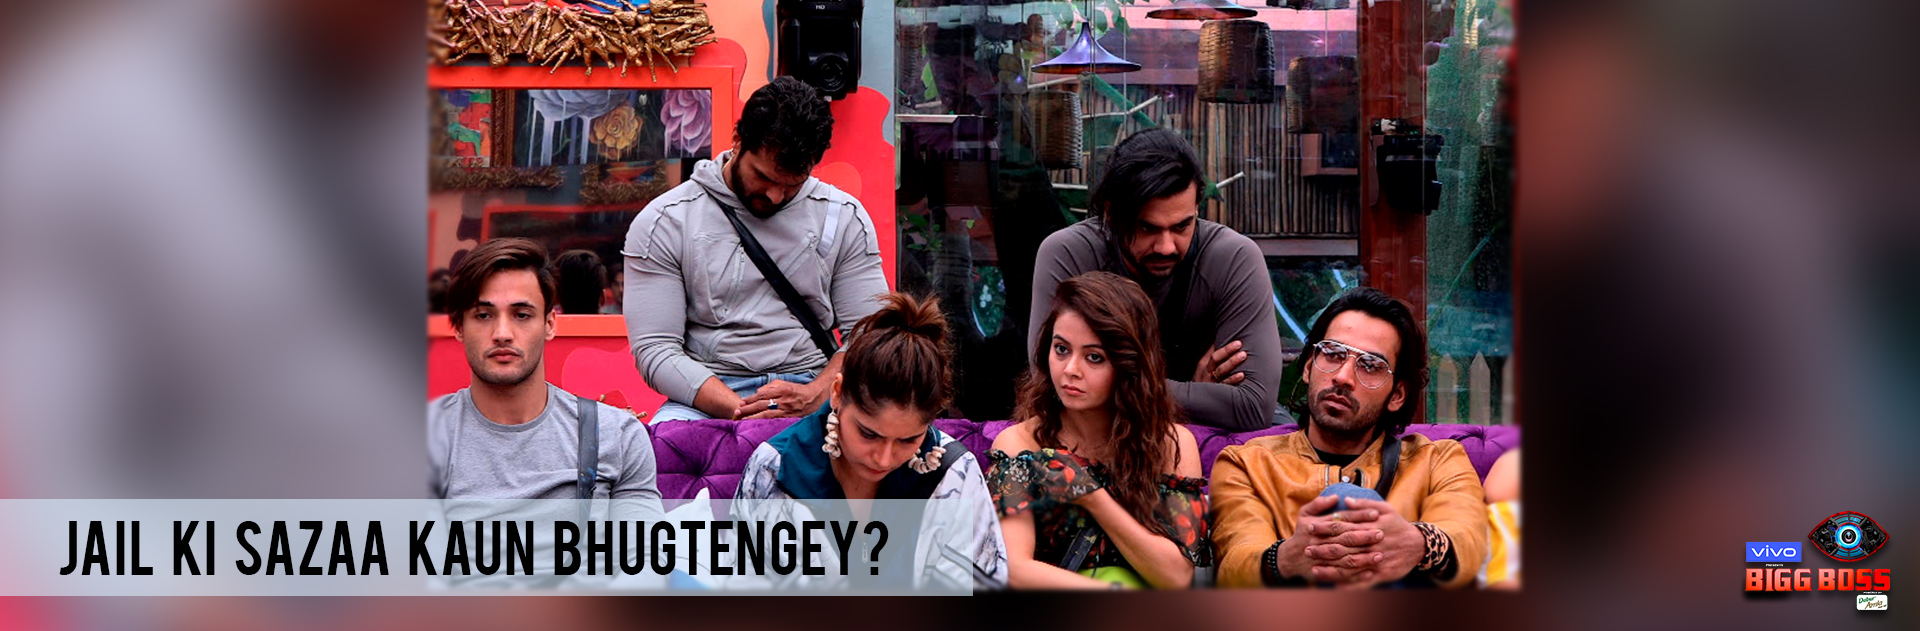 5 things you must look forward to on Bigg Boss 13 tonight!